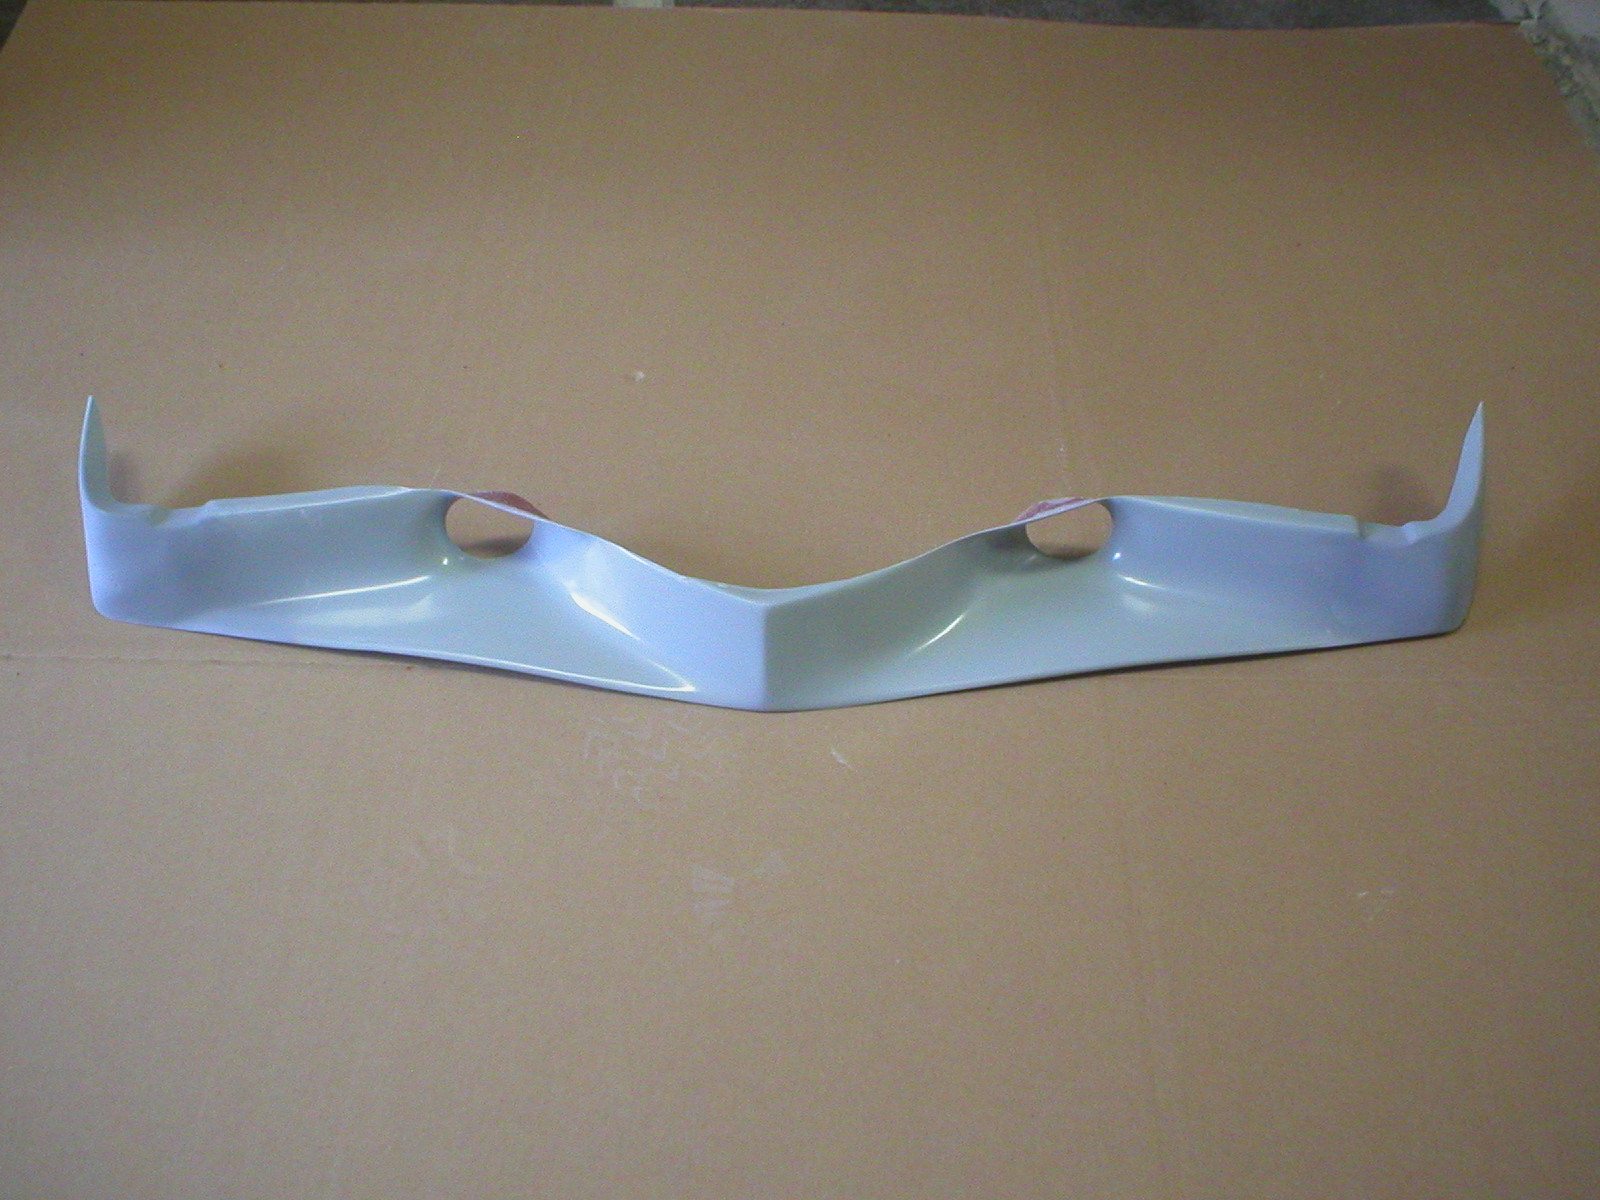 1978 Ford Truck >> Chevy Corvette Spoiler 1973-1979, Front, Racing - American ...